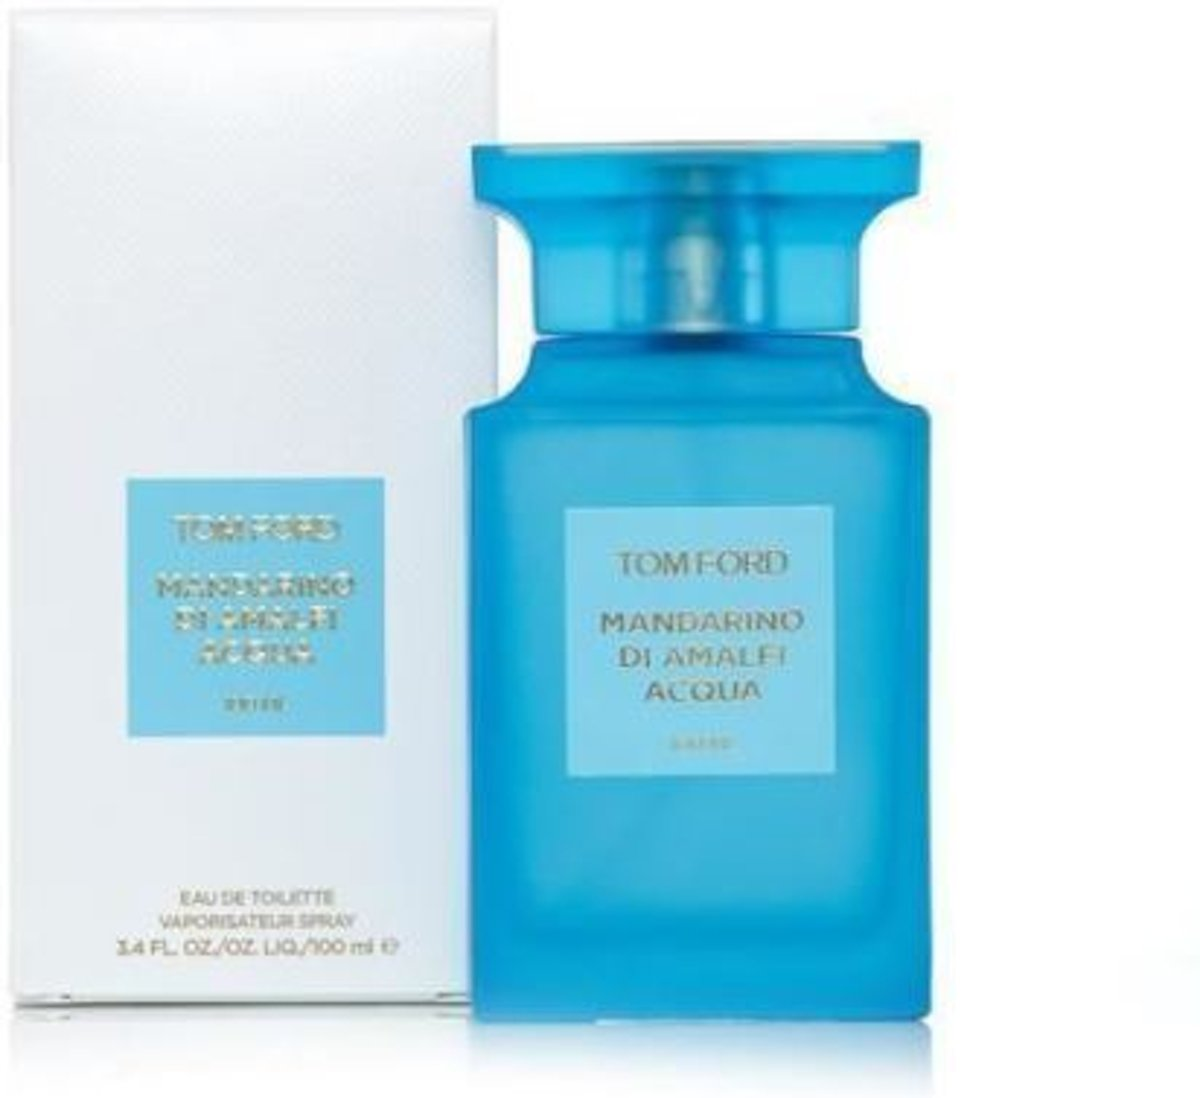 Tom Ford Mandarino Di Amalfi Acqua Edt Spray 100ml